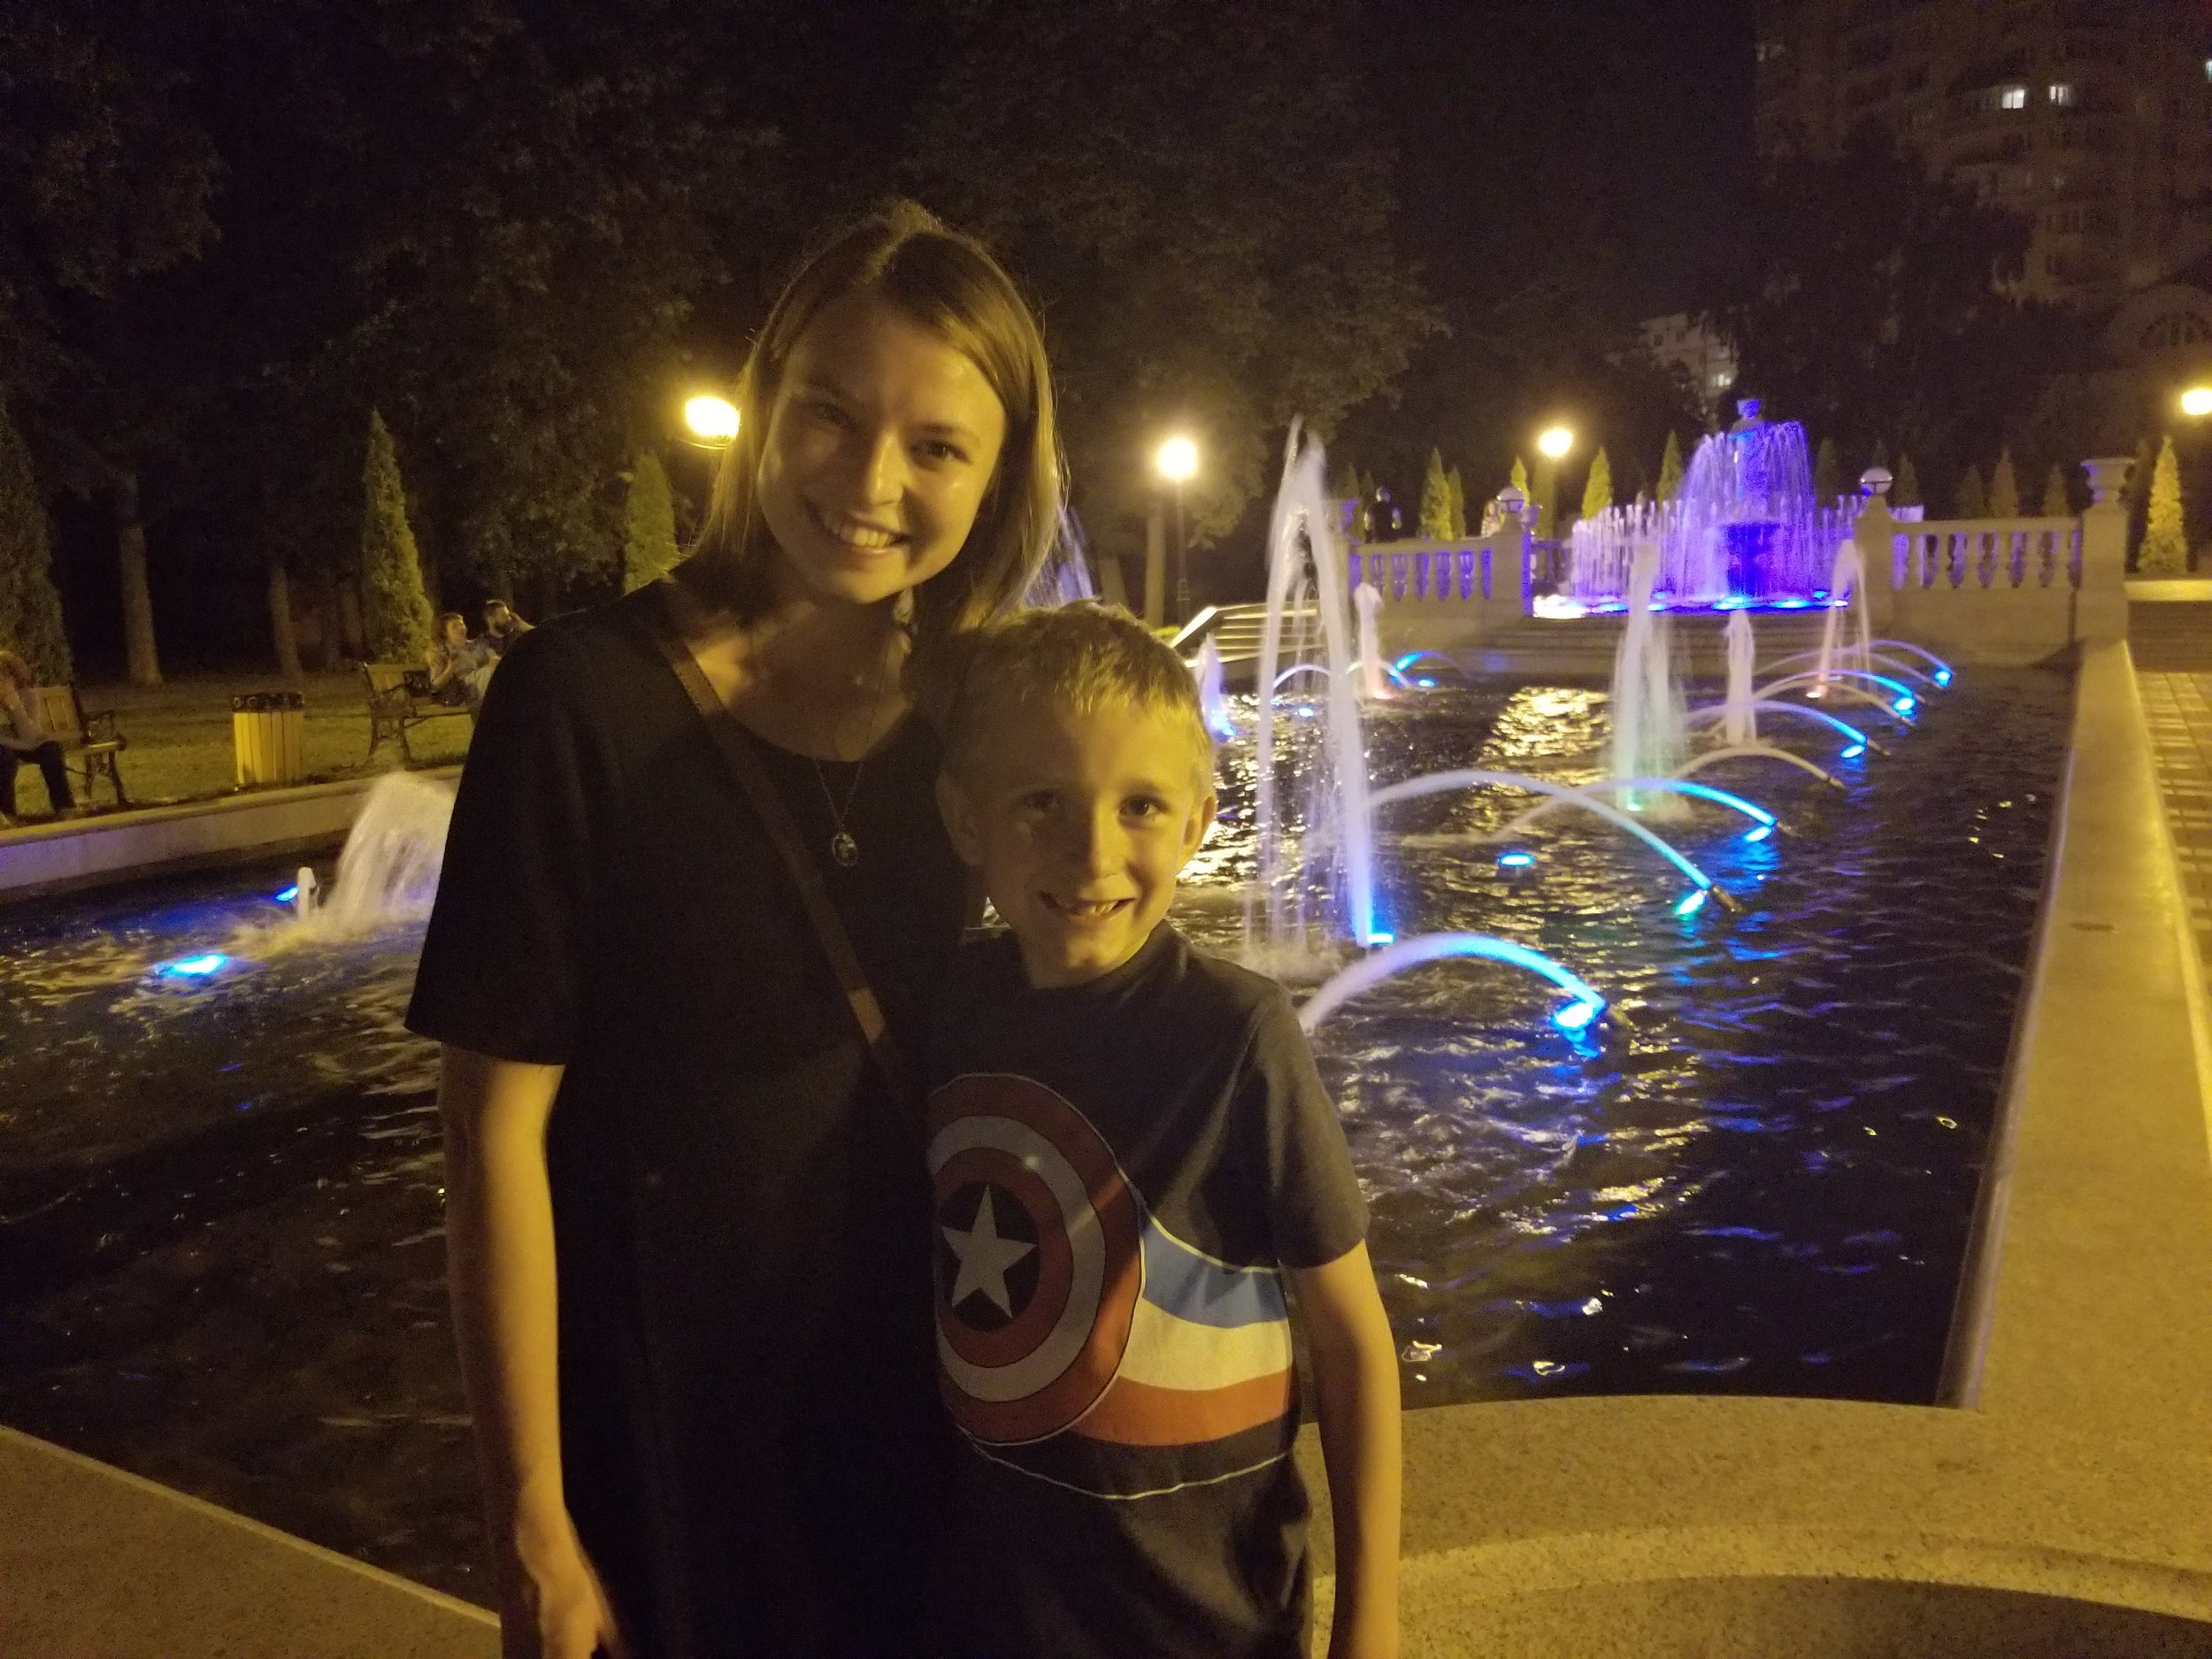 Caleb and Erin enjoying the late night walk by the fountains